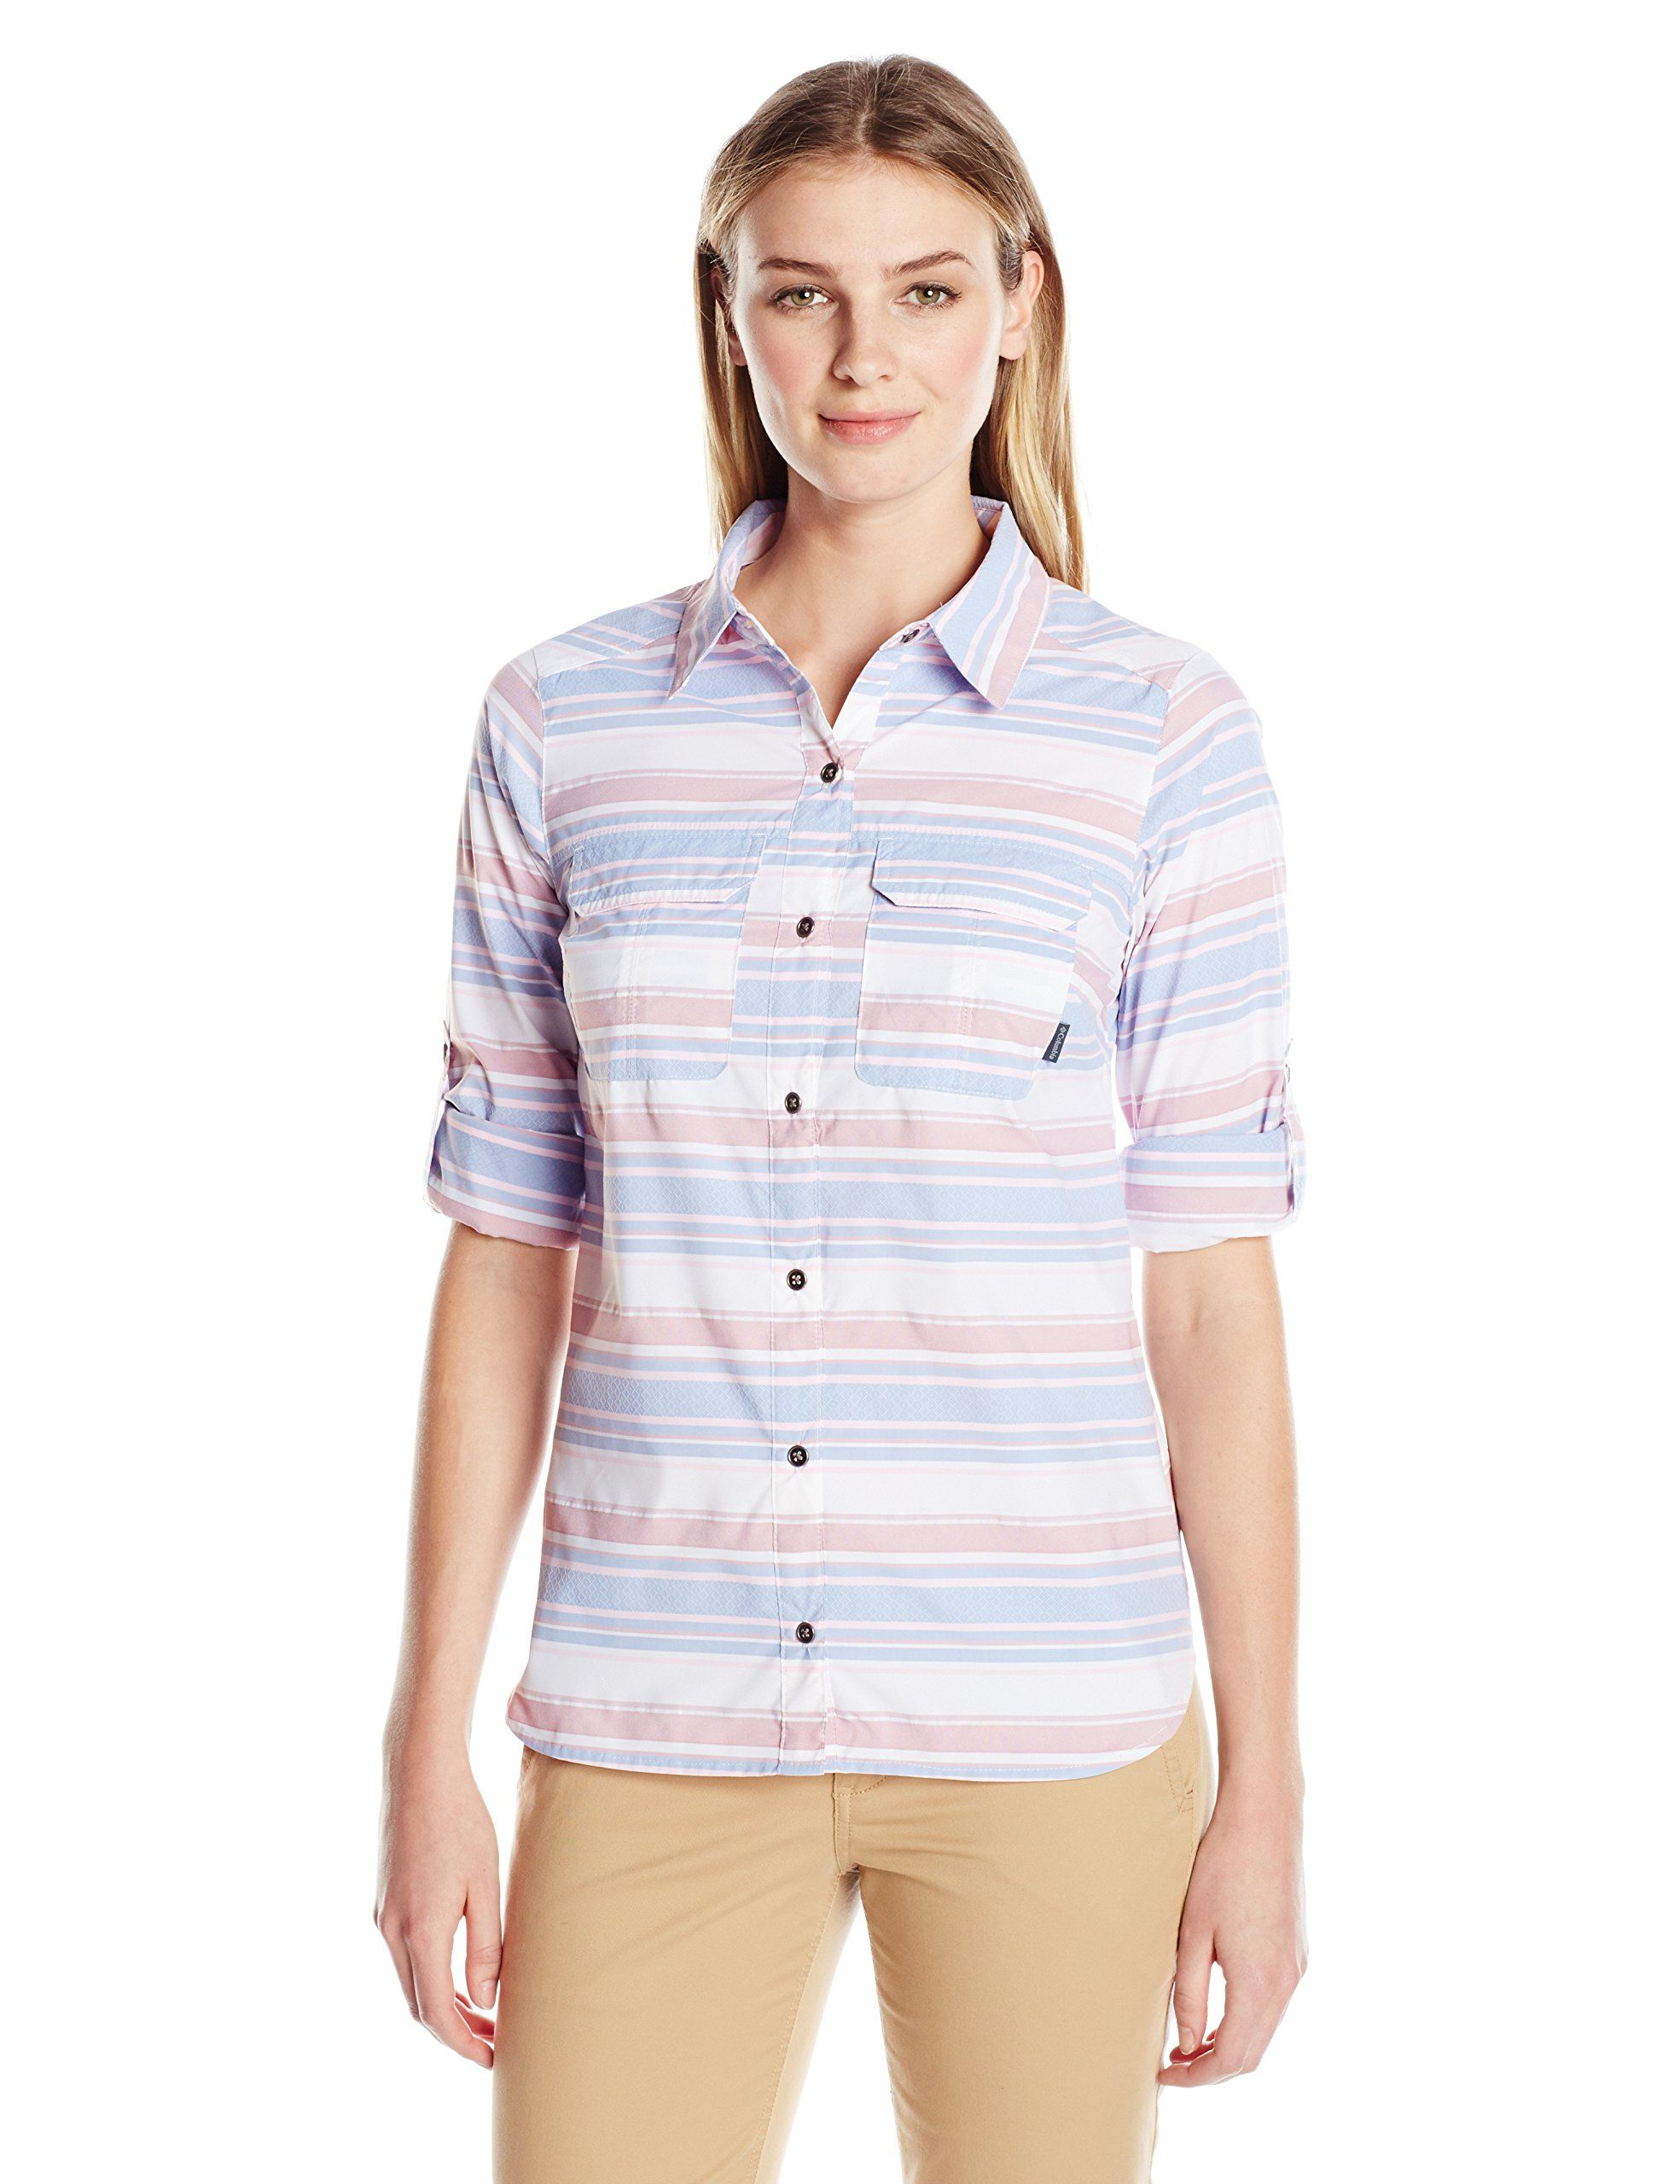 08f2b681a79 Womens Upf Shirts